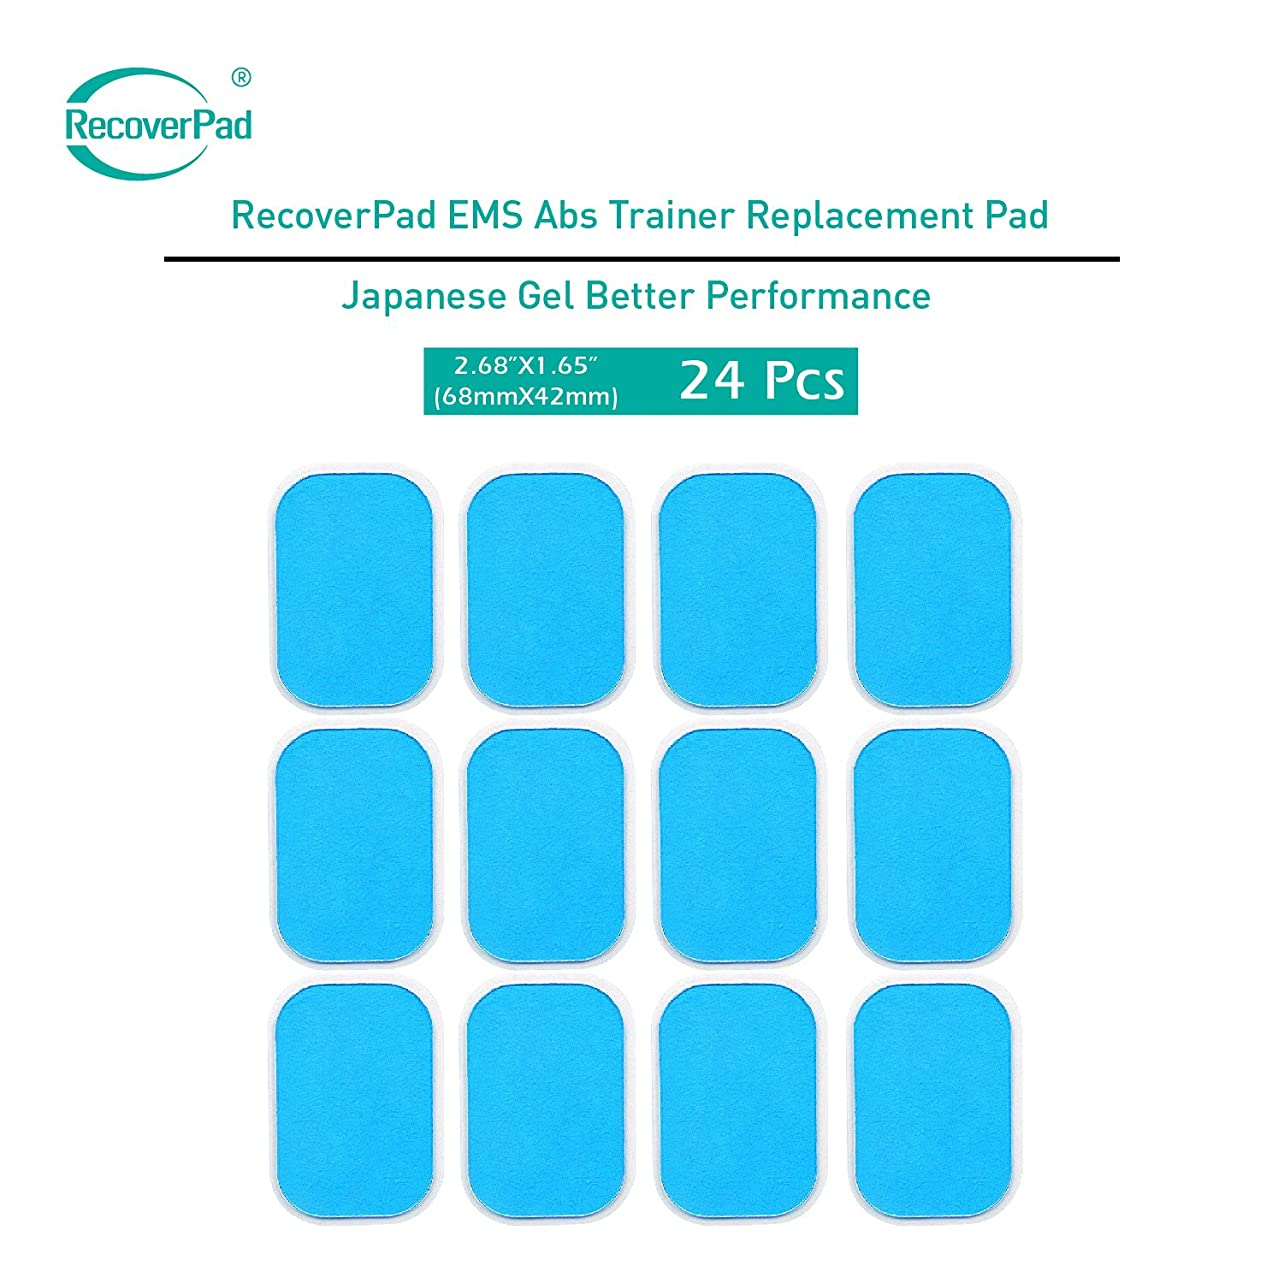 政治家のアナリスト出席するRecoverPad 24 Pads of EMS Abs Trainer Replacement Japanese Made Gel Sheet for Muscle Abdominal Ab Trainer Stimulator Gel Pads Accessories